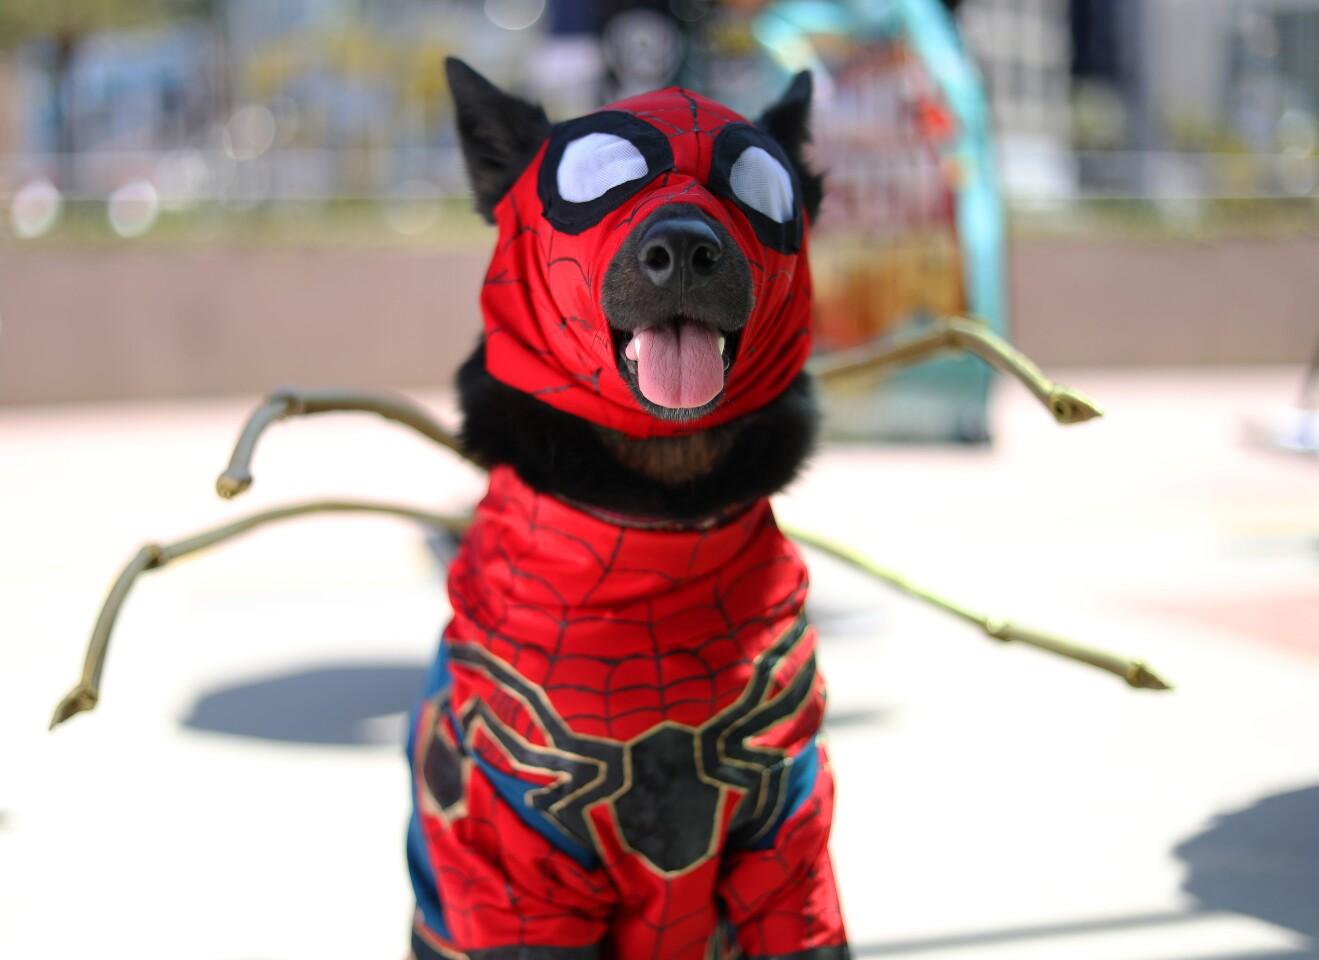 Merly, the cosplay dog, of Houston dressed as Iron Spider at Comic Con International in San Diego on July 18, 2019.